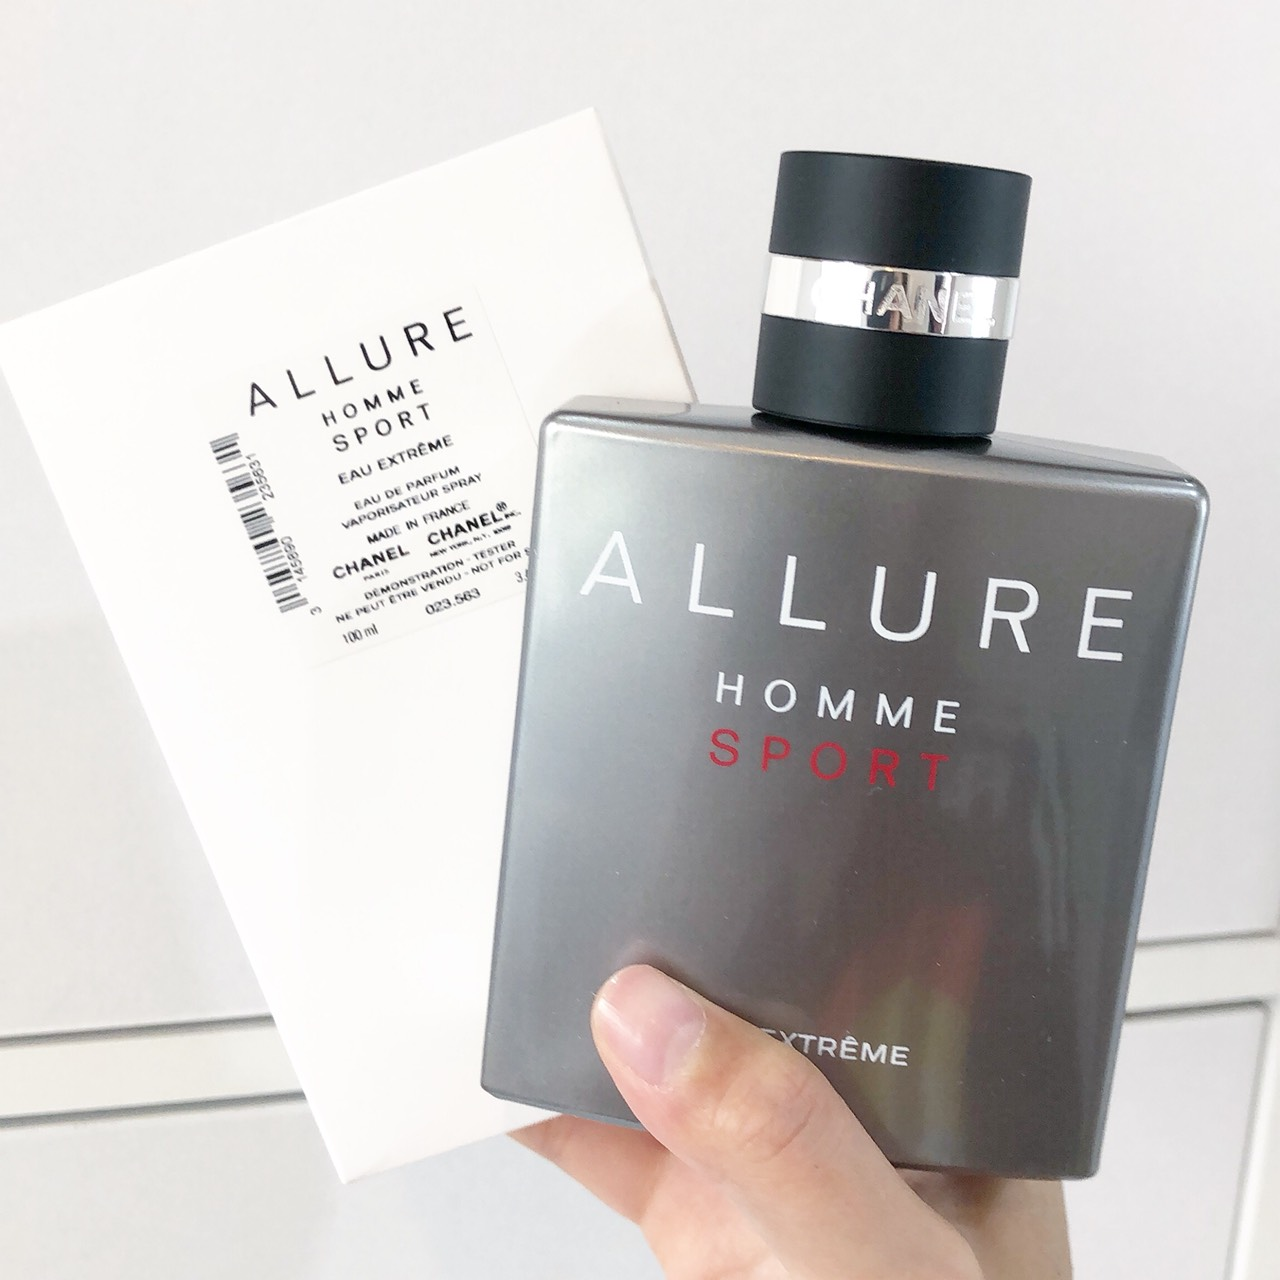 น้ำหอม Chanel Allure Homme Sport Eau Extreme EDT 100ml. ของแท้ 100%